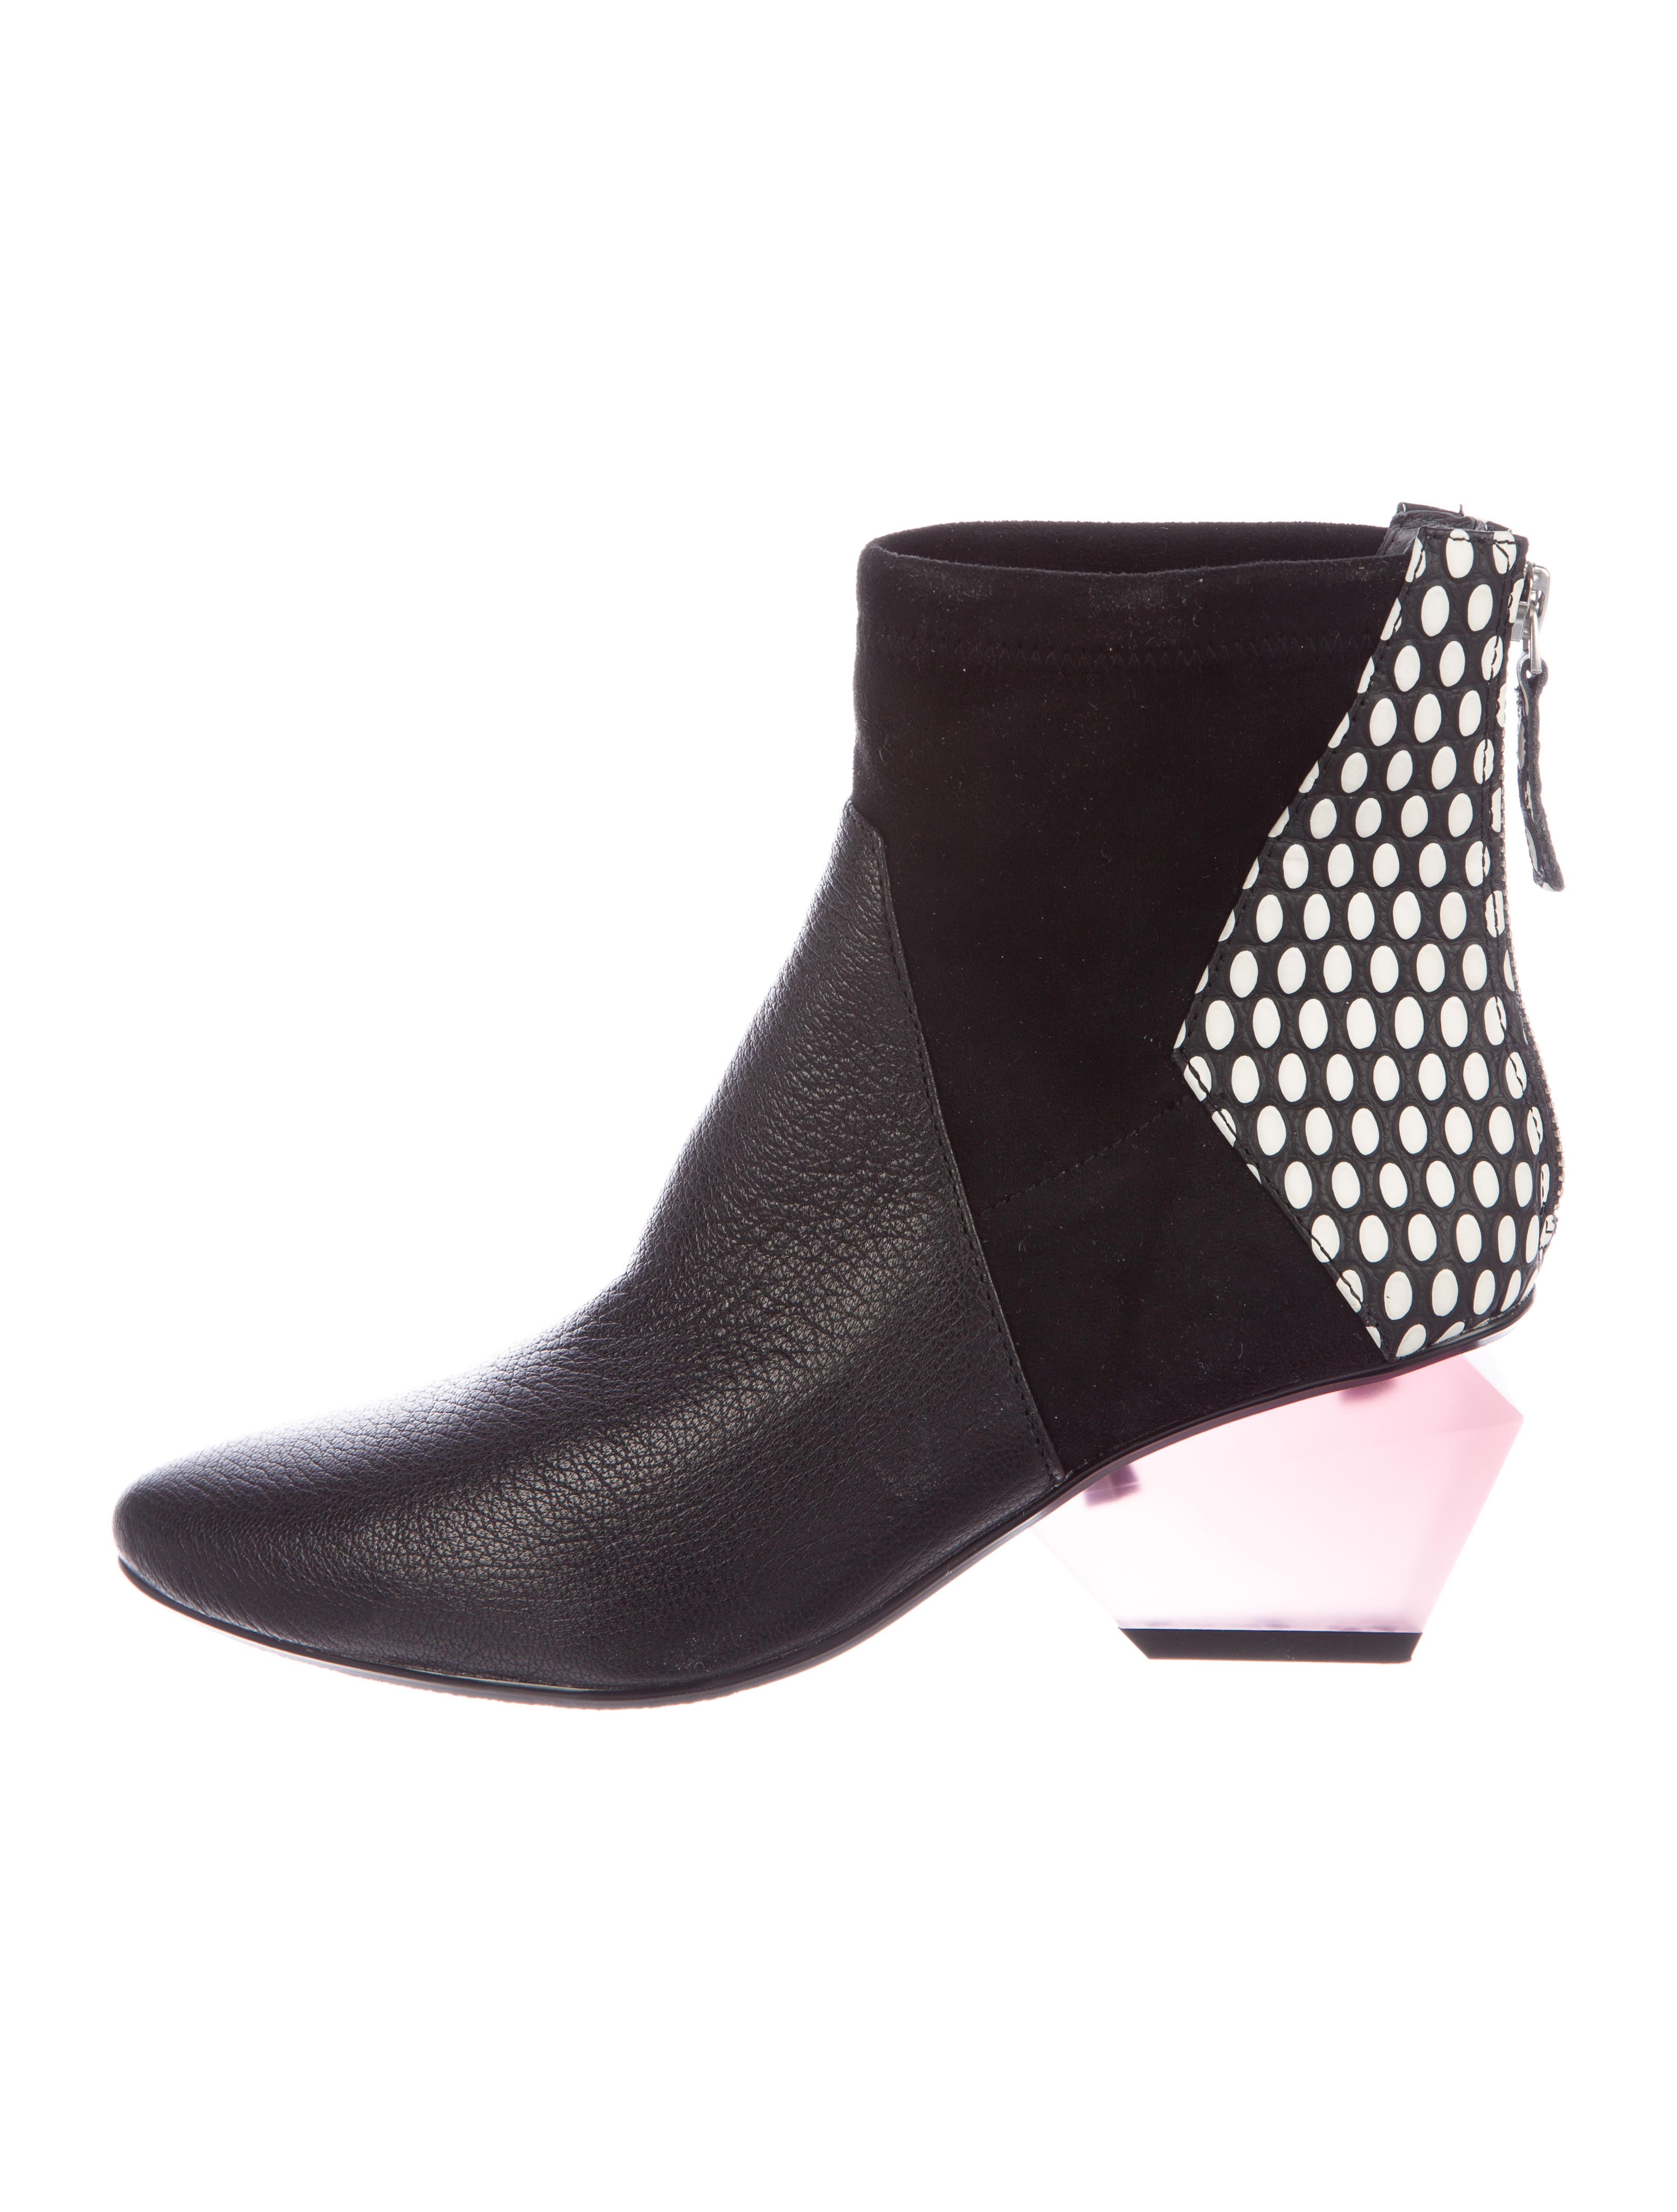 pre order cheap price United Nude Embossed Pointed-Toe Booties sale from china free shipping amazing price order online clearance online fake XUZXuuMuHF